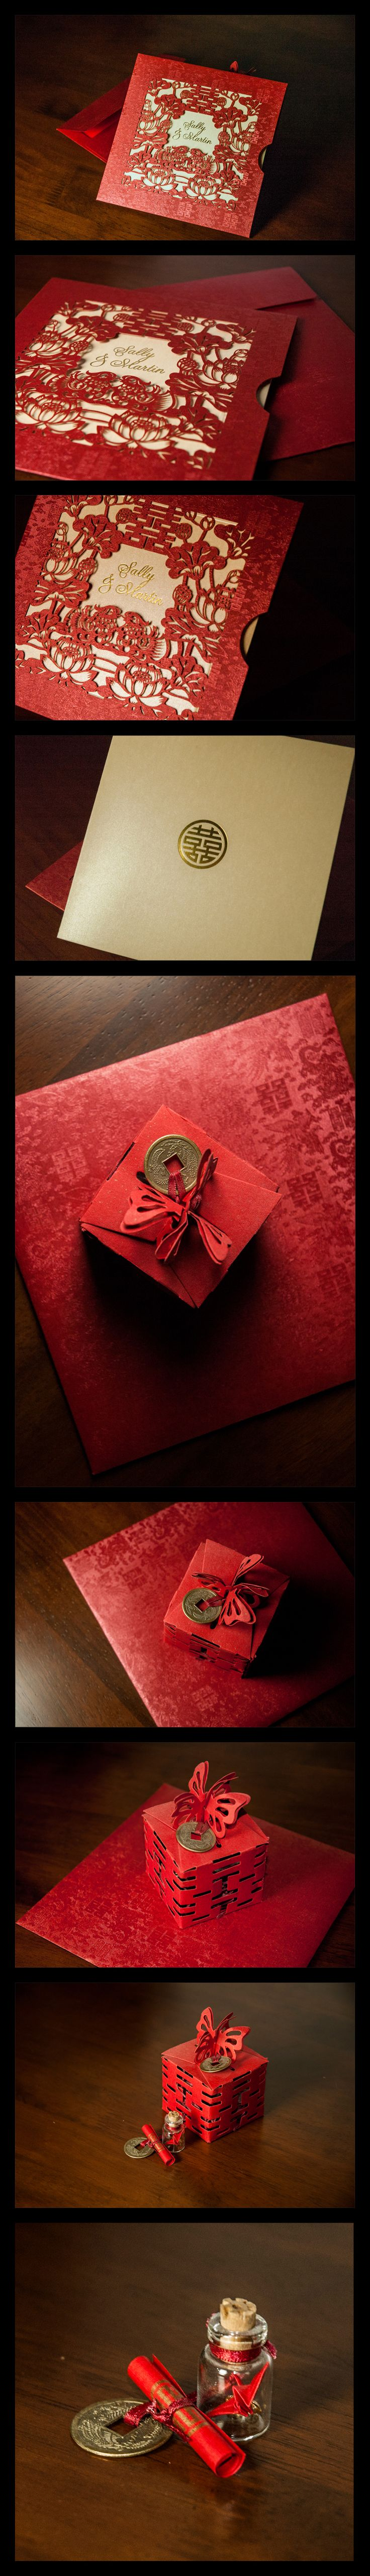 Chinese Wedding Invite & Wedding Favours                                                                                                                                                                                 More